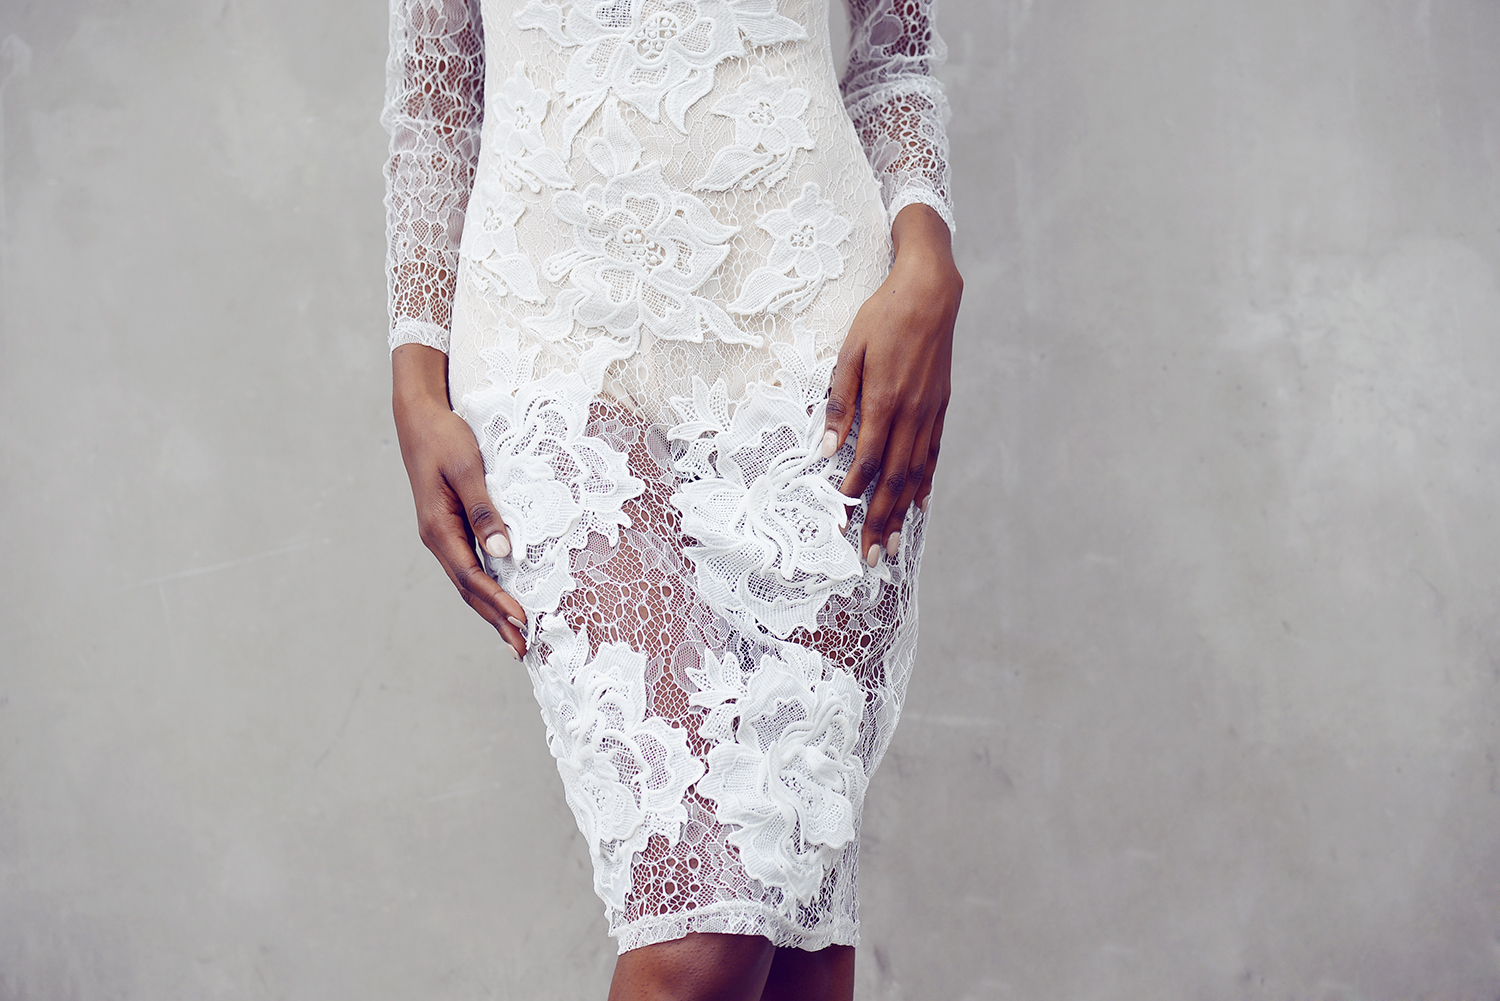 missguided LACE APPLIQUE dress - natasha-ndlovu-4